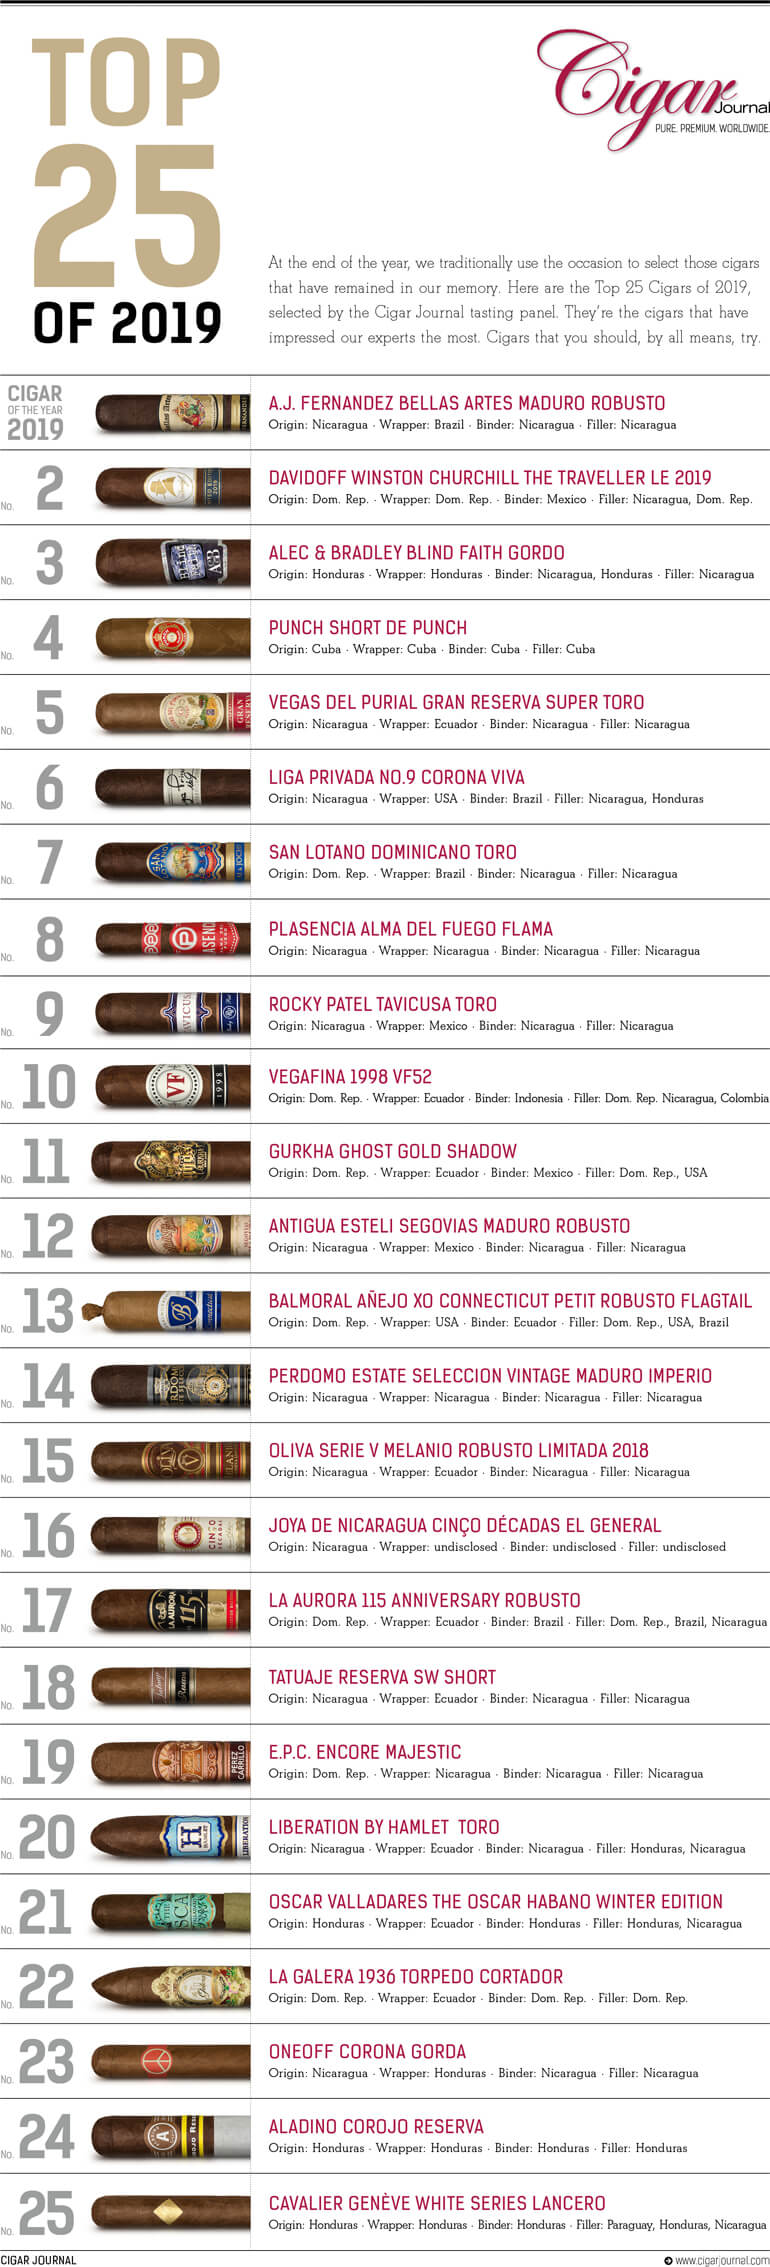 Cigar Journal's Top 25 Cigars of 2017: #19 to #14